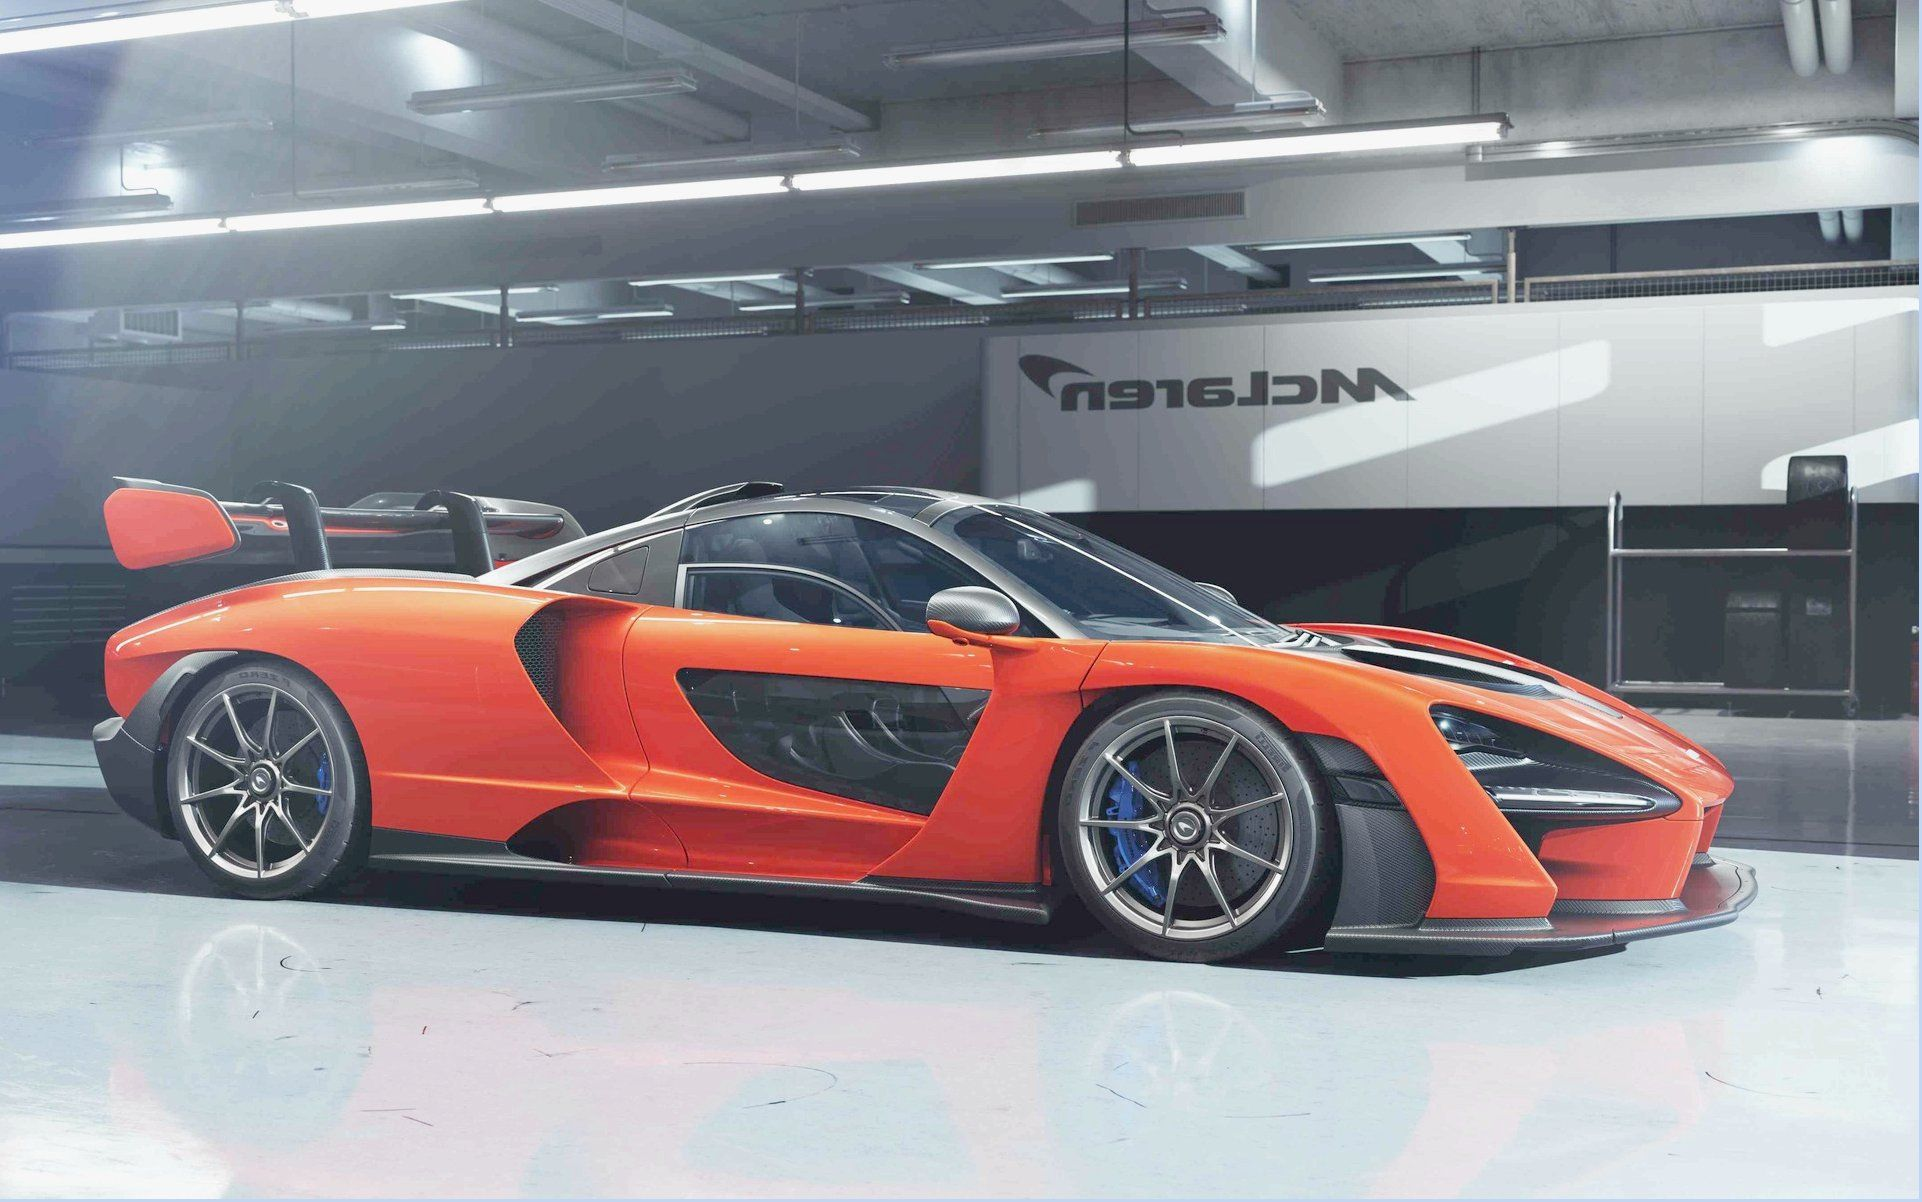 It Offers Three Series Of Models At Mclaren Obviously All Very Fast And Dynamic Cars We Find The Sports Series The Most A Car Guide Top Cars Mclaren